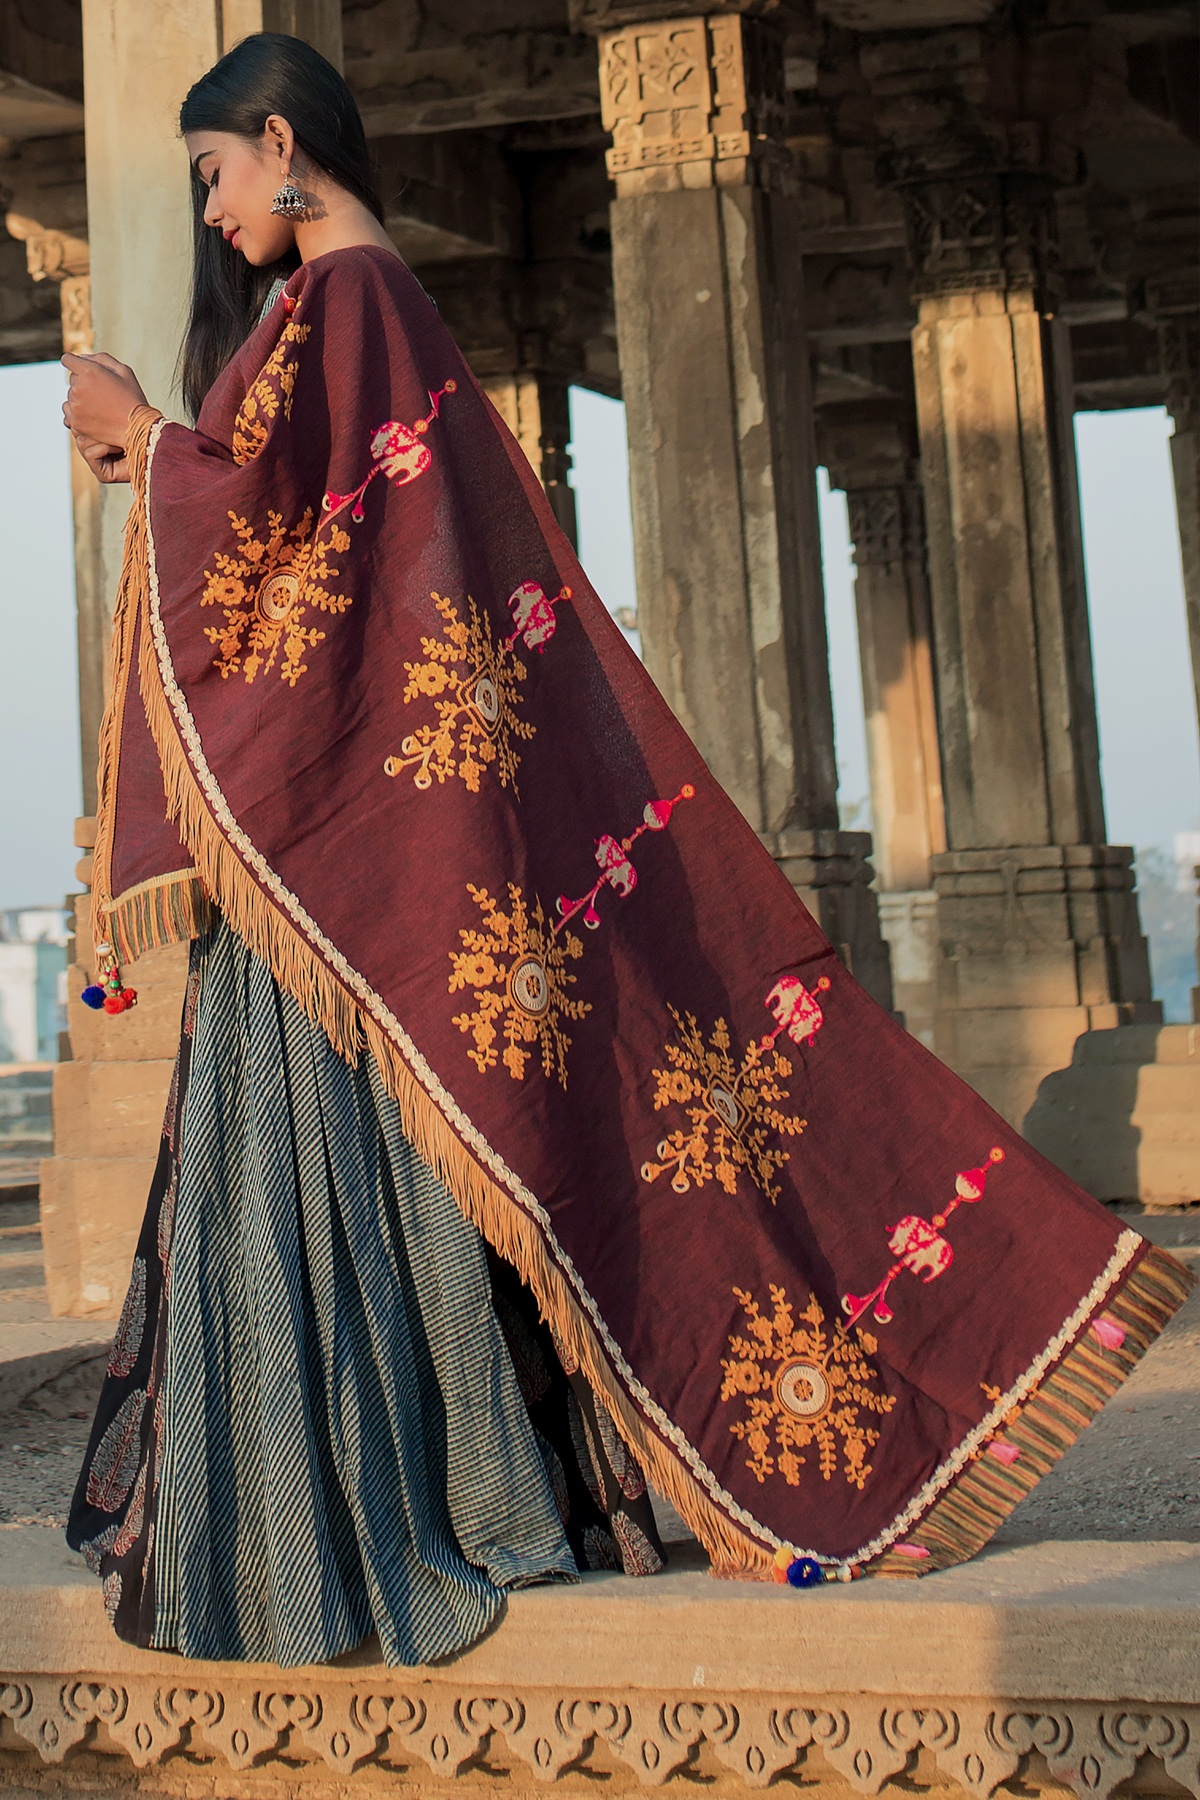 Designer Dupatta In Maroon Color Fabricated On Khadi Cotton Beautified With Contrasting Thread work And Pom Pom Lace